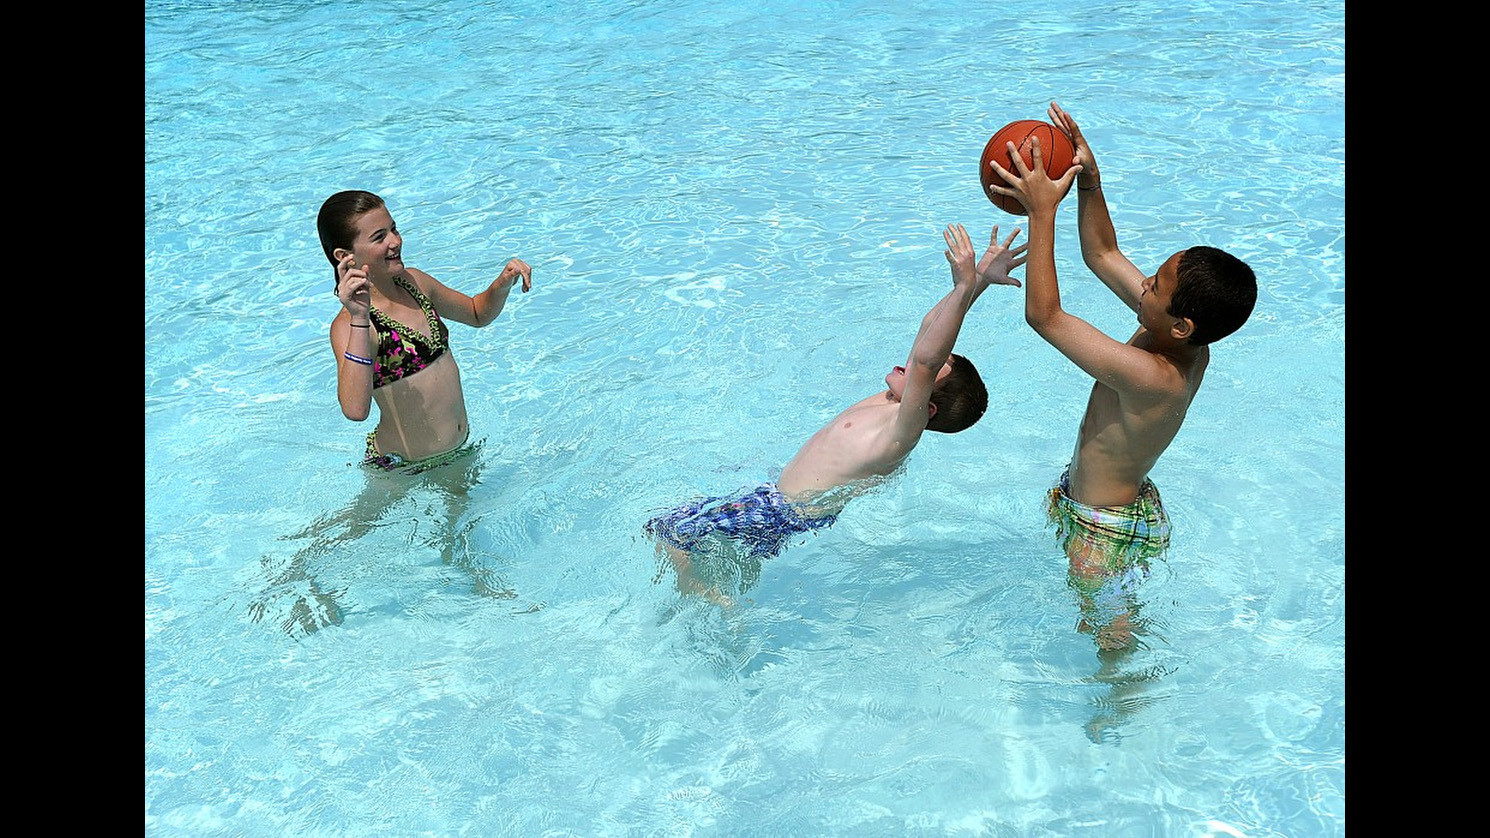 Local Swimming Holes And Public Pools To Cool Off Carroll County Times